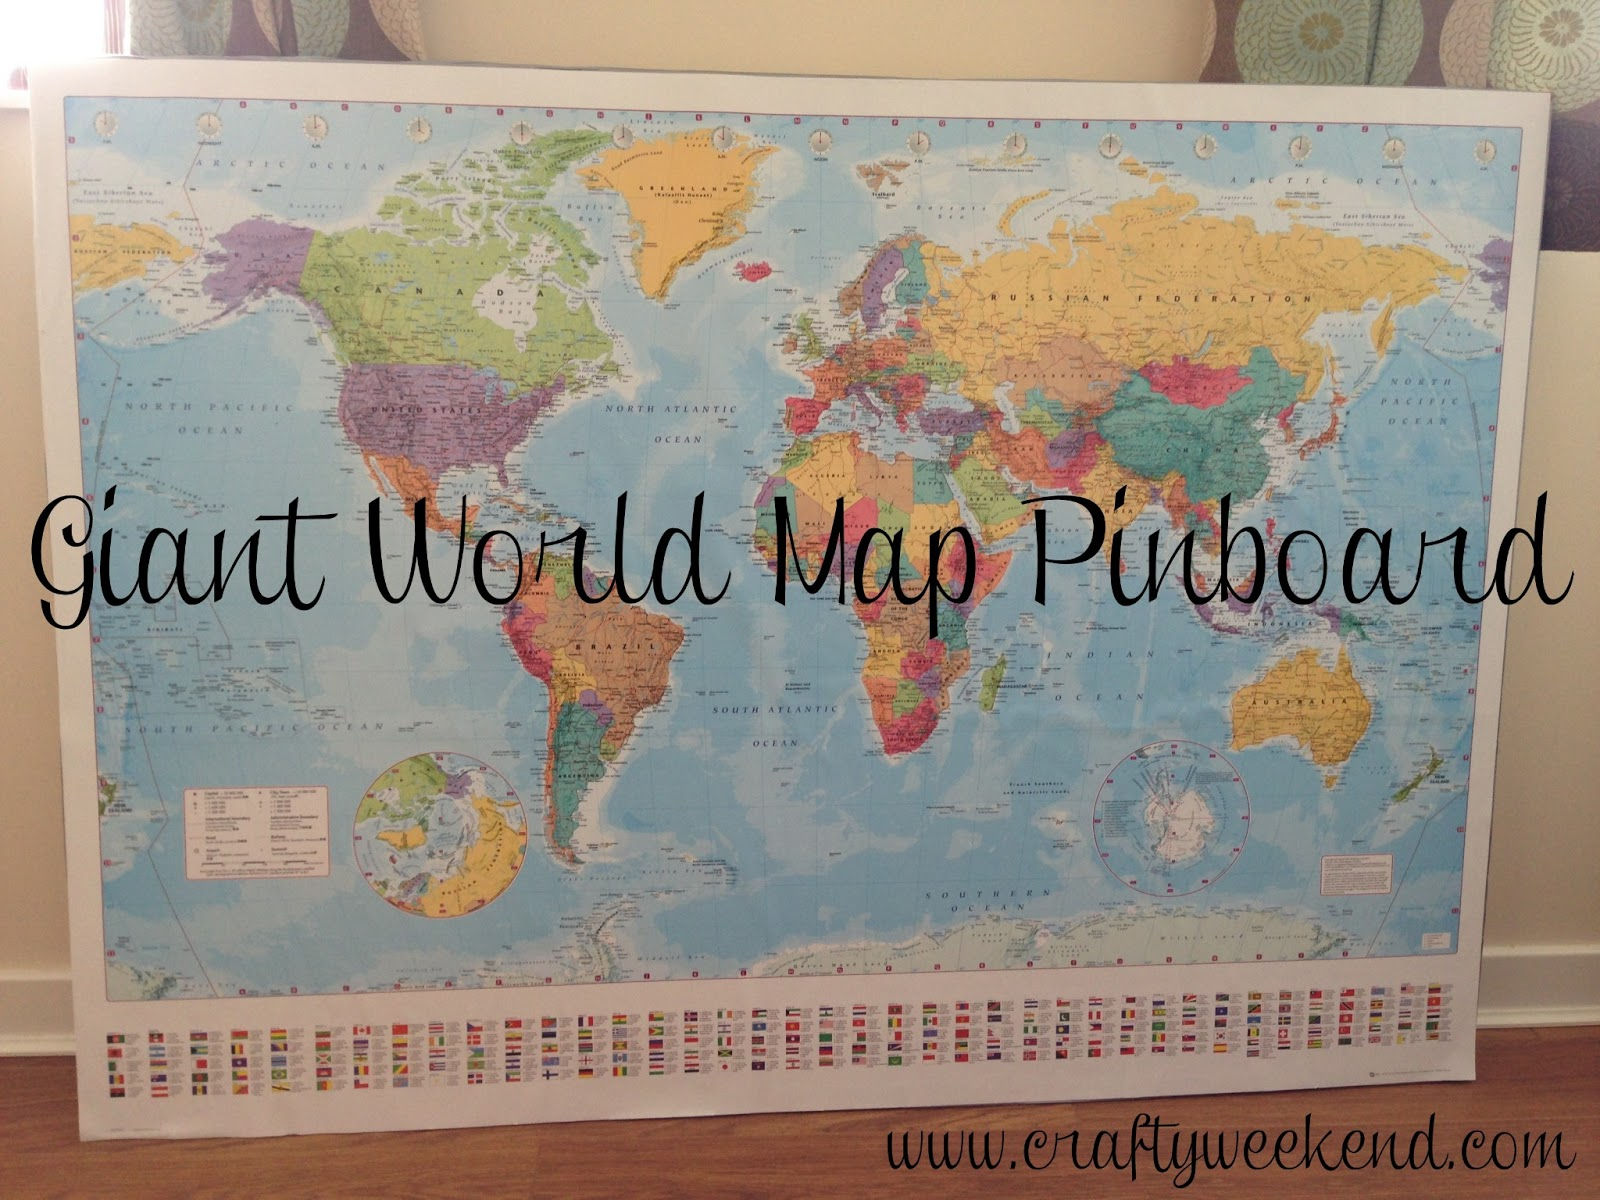 Giant World Map Pinboard ~ Crafty Weekend: Craft projects for the